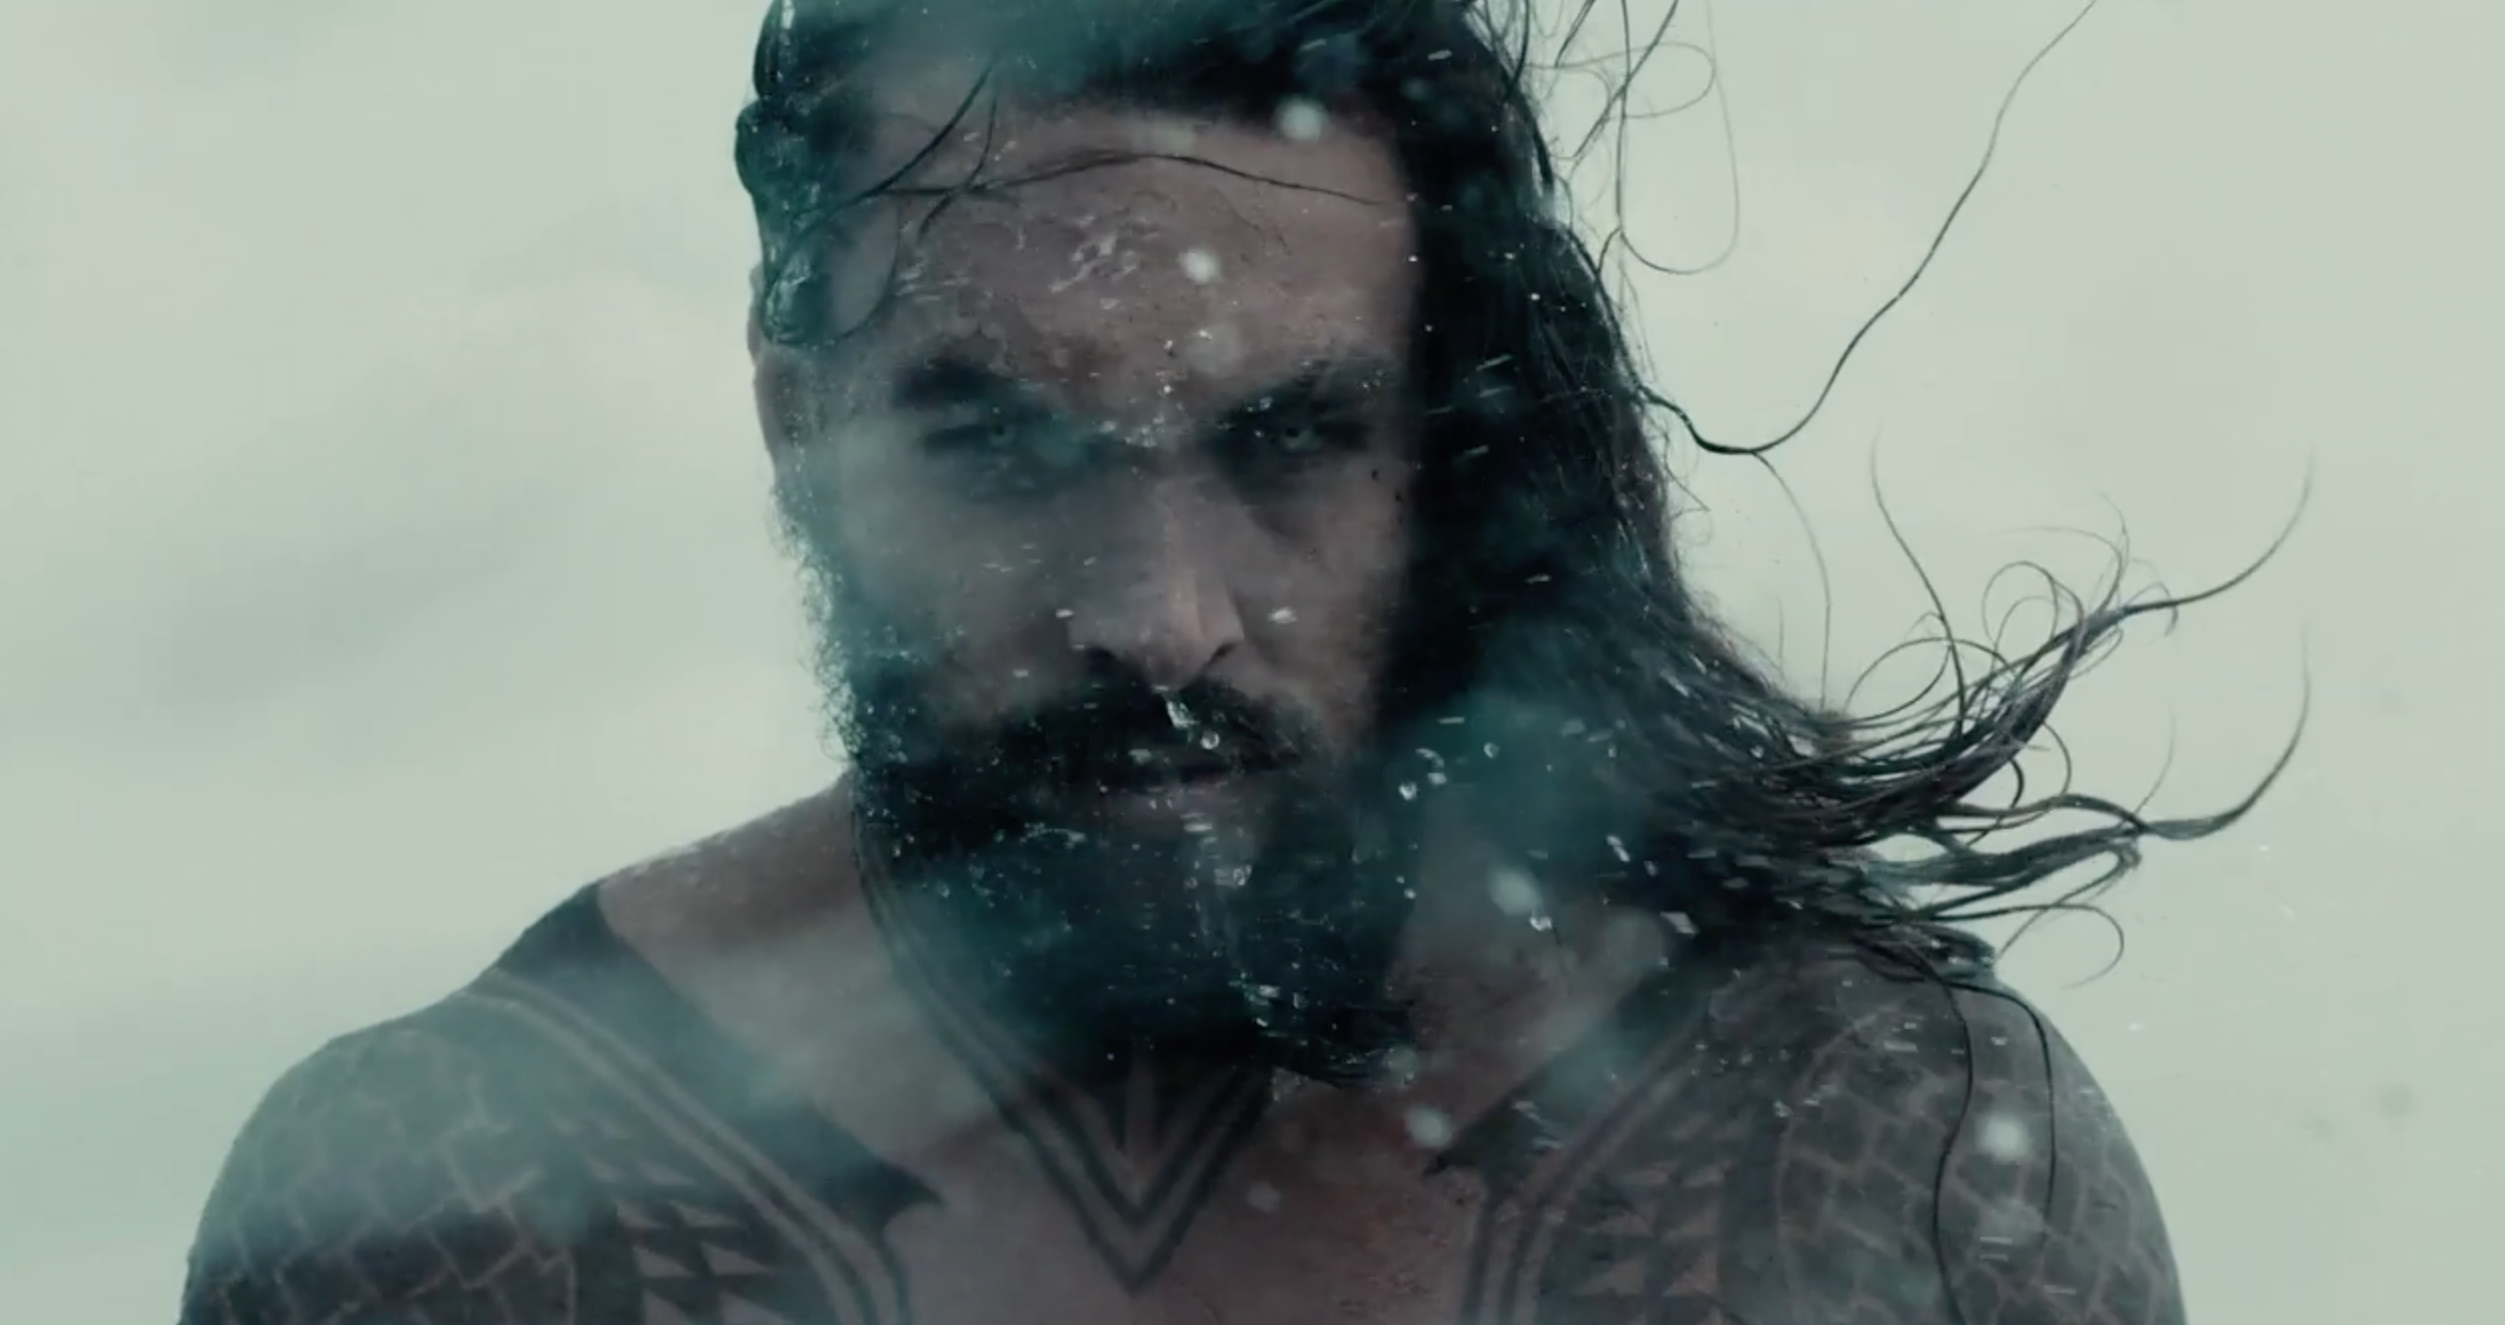 justice-league-sdcc-trailer---aquaman-jason-mamoa-191866